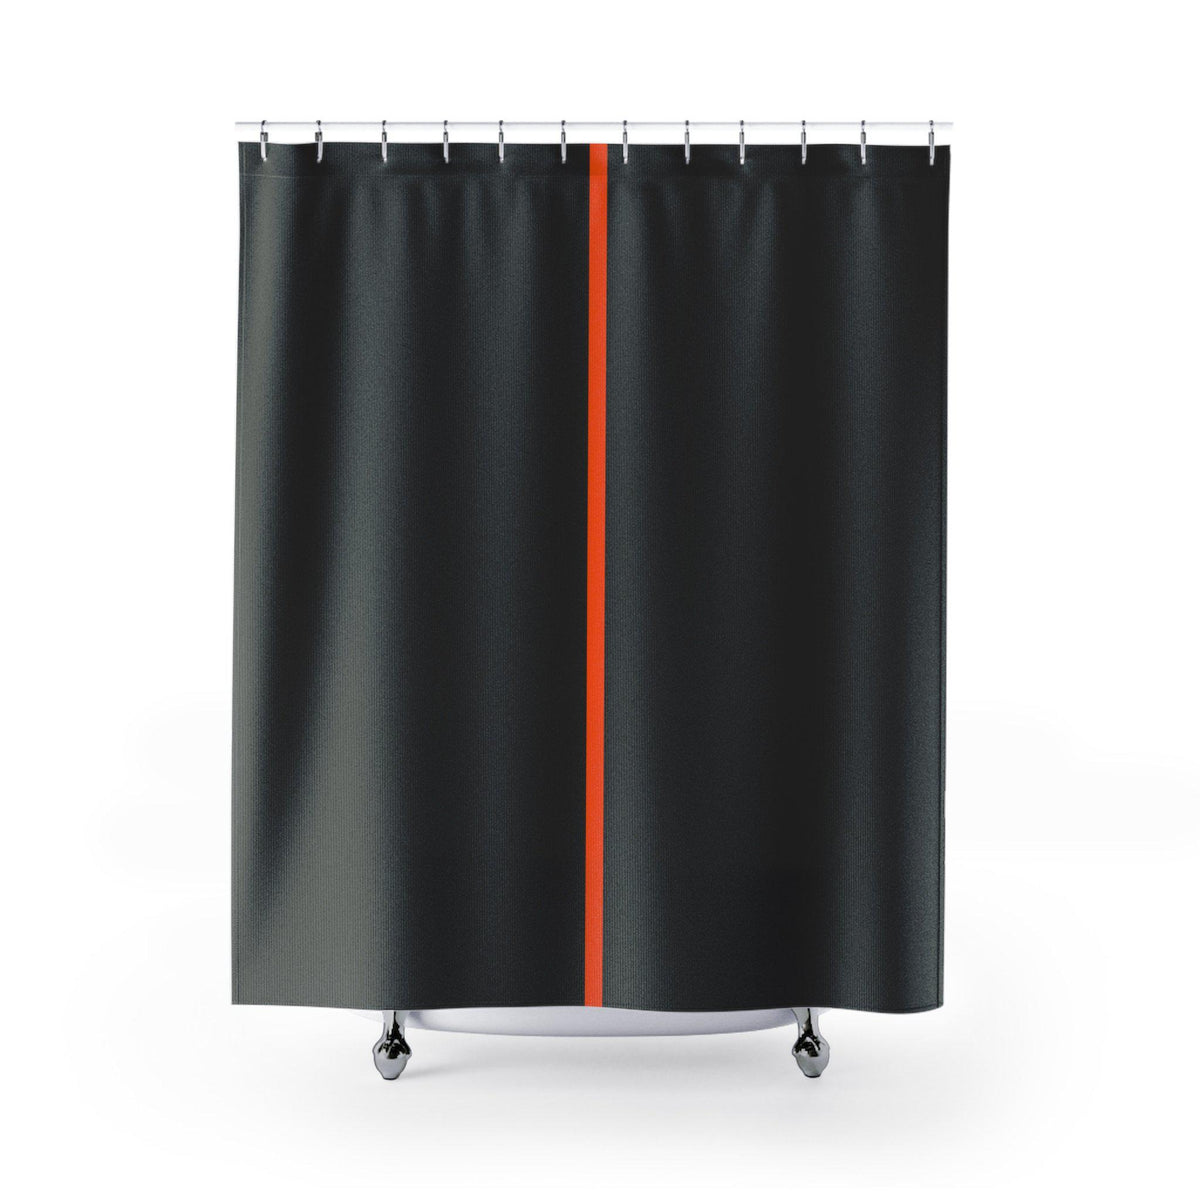 Vertical line contemporary shower curtain-Bath - Bathroom Accessories - Shower Accessories - Shower Curtains-Maison d'Elite-71x74-Black/Orange-100% Polyester-Très Elite